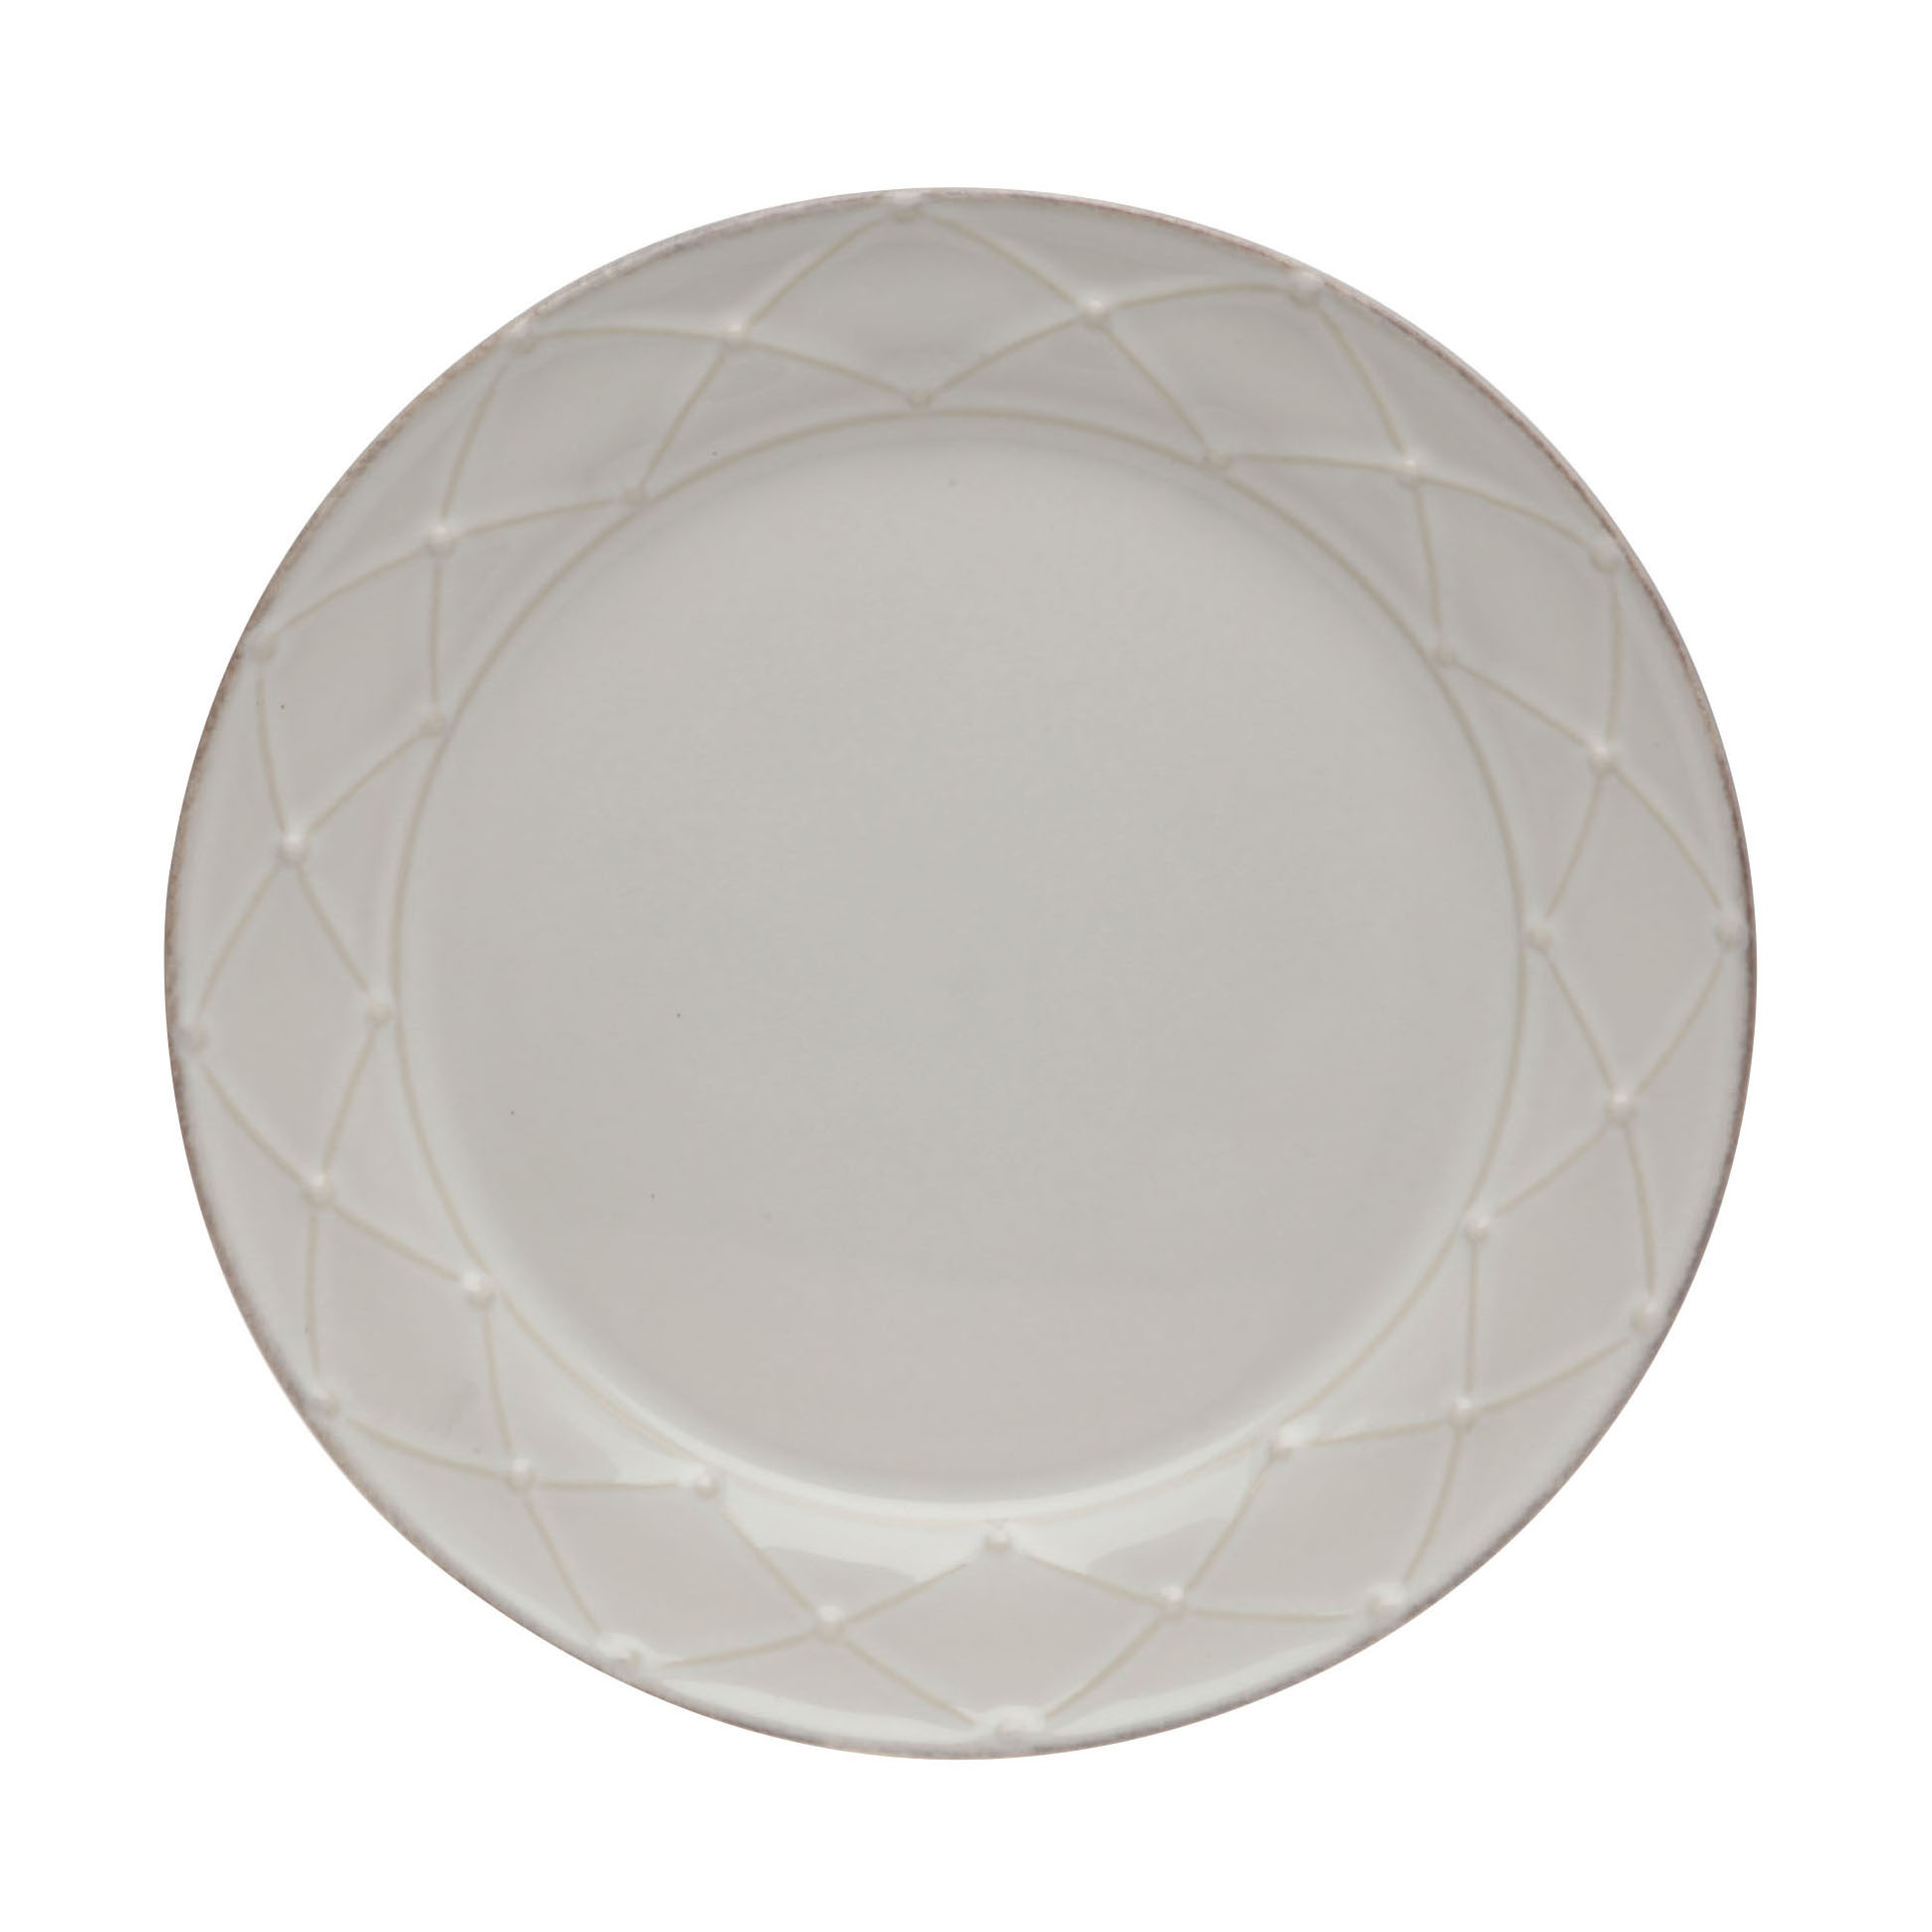 Meridian Rd. Salad Plate Decorated White 23.6cm Sparkle Gift